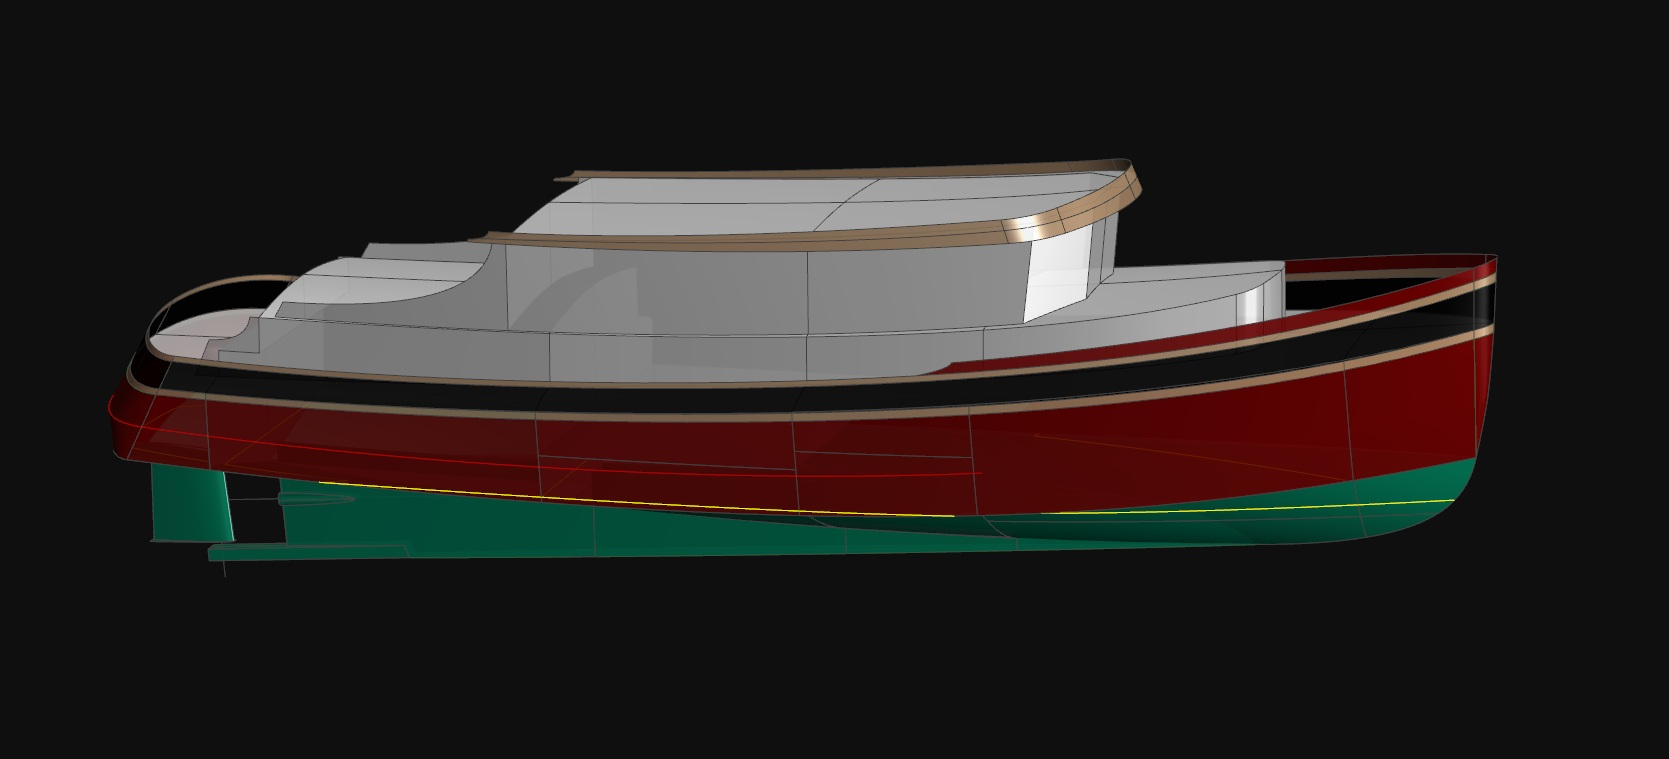 The 48' Fast Trawler Yacht - RHUMB RUNNER - Kasten Marine Design, Inc.